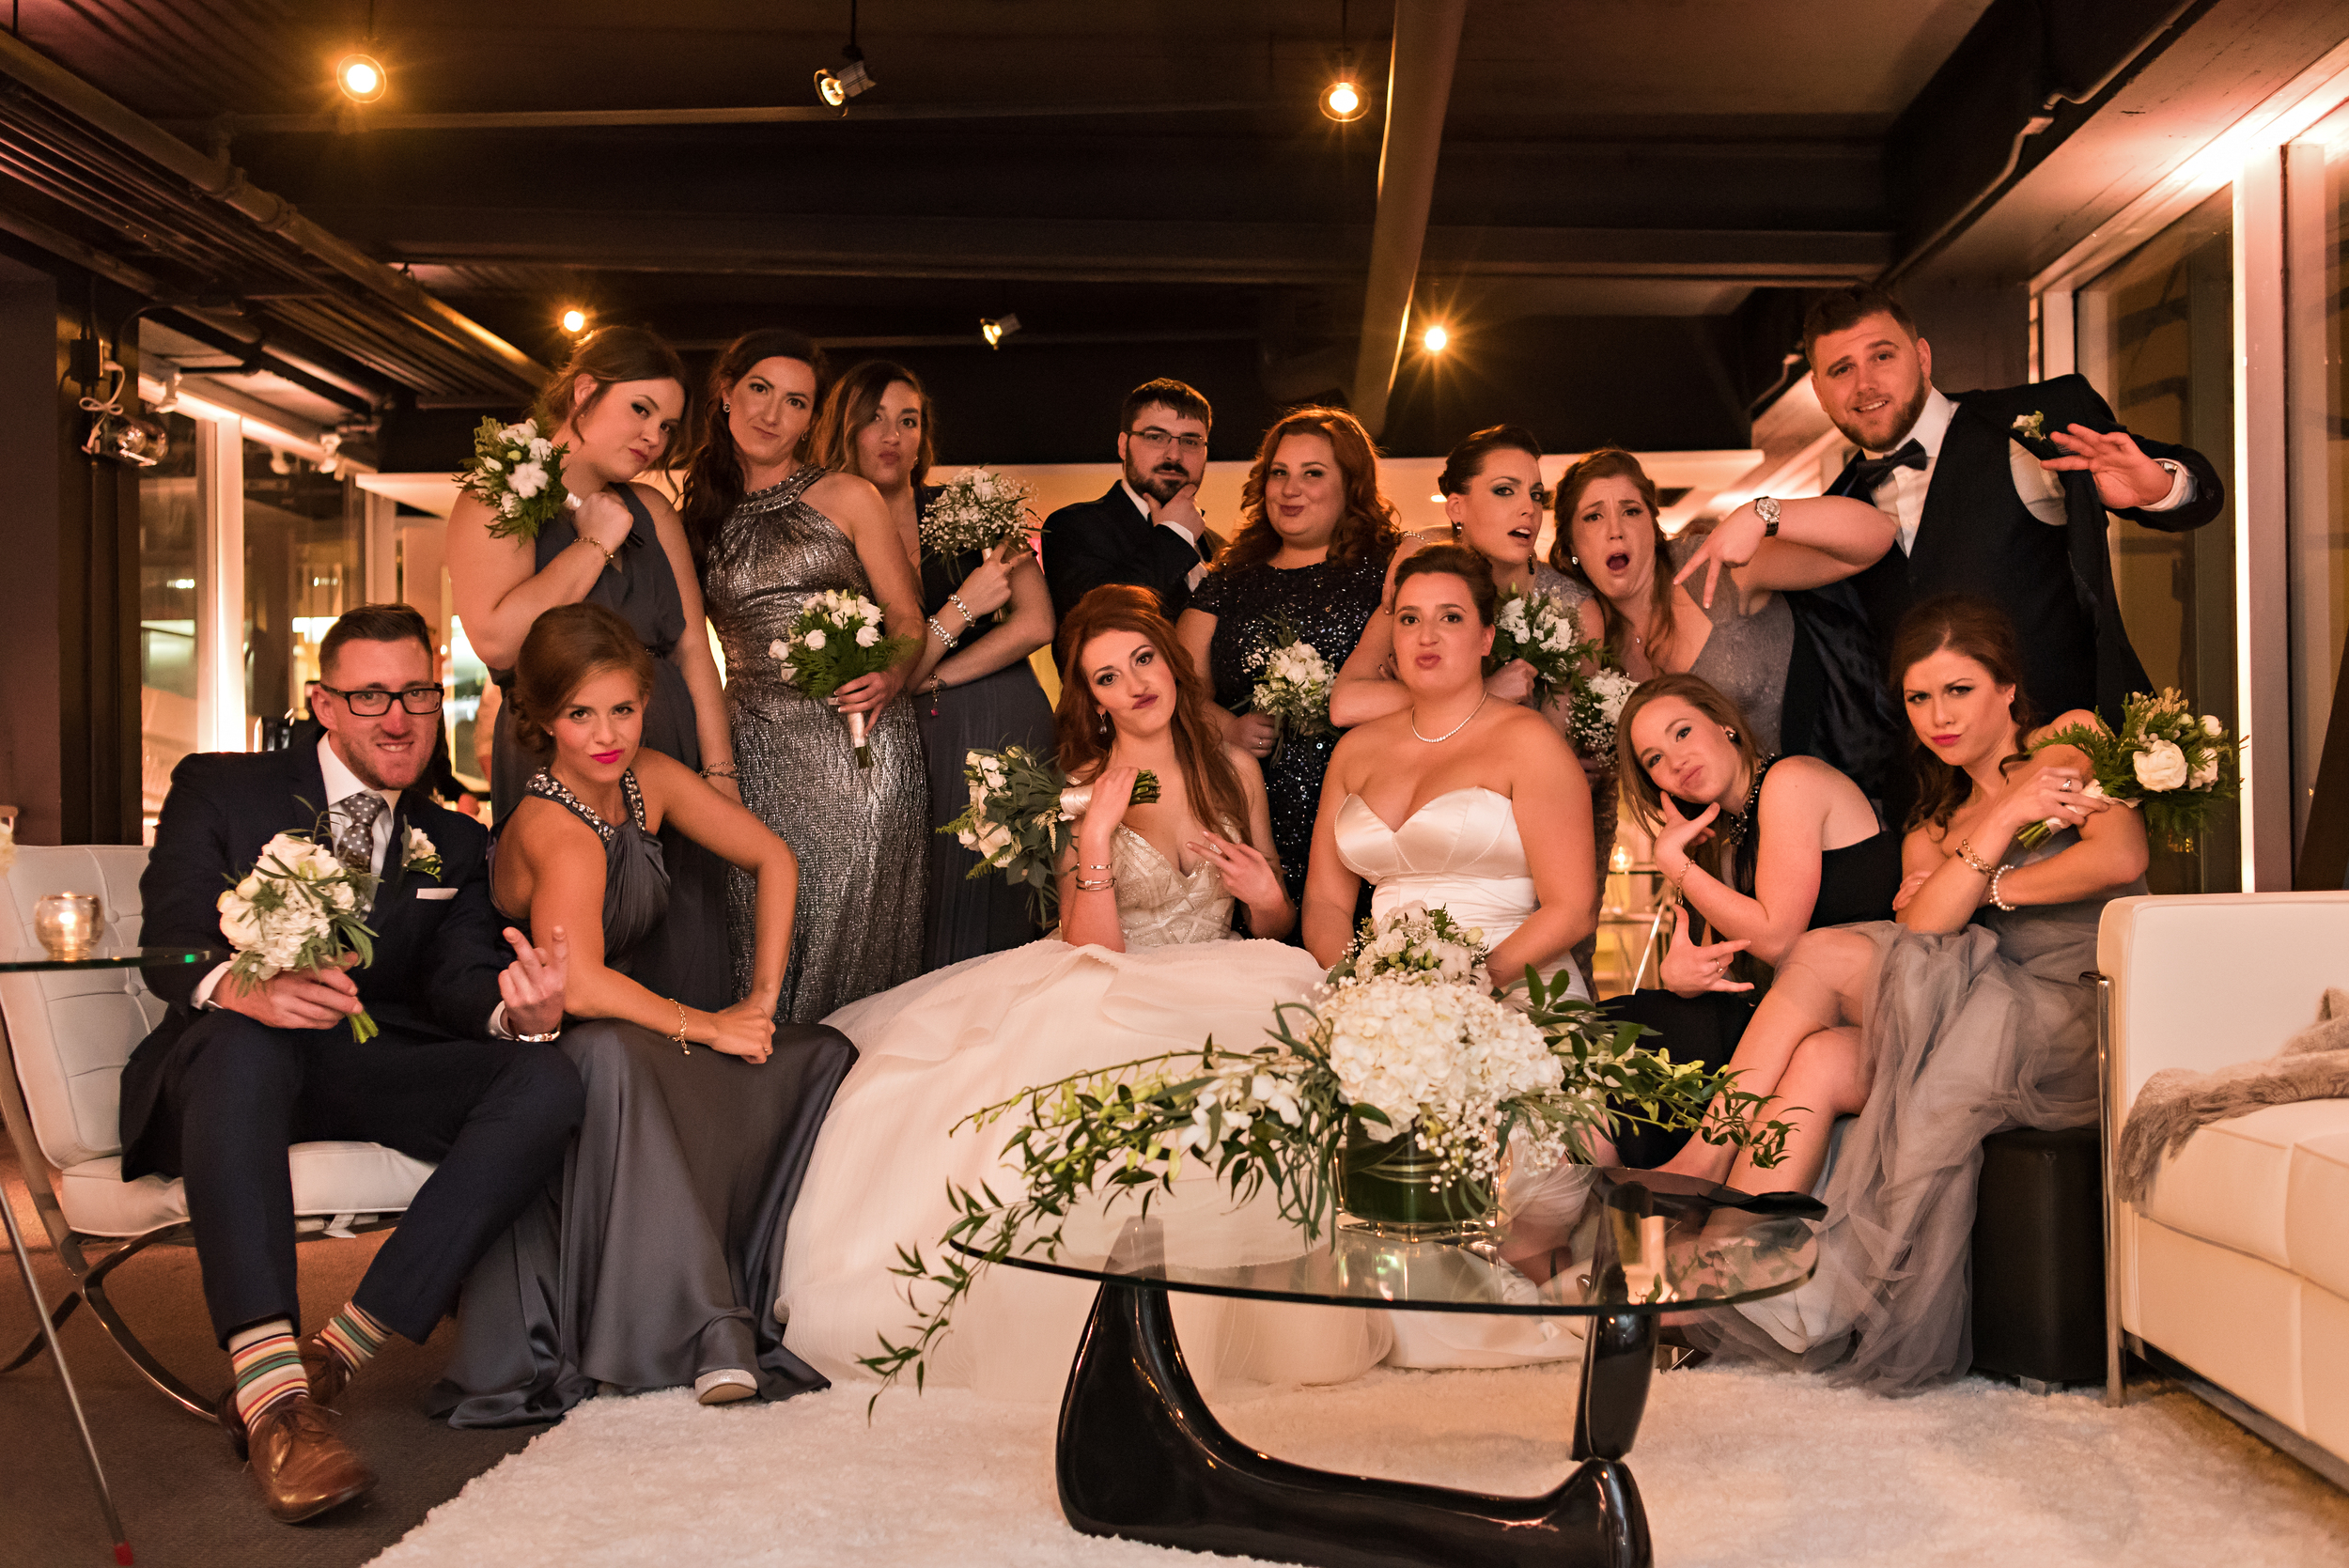 A group photo of the brides and their wedding parties at the wedding reception in Quebec City